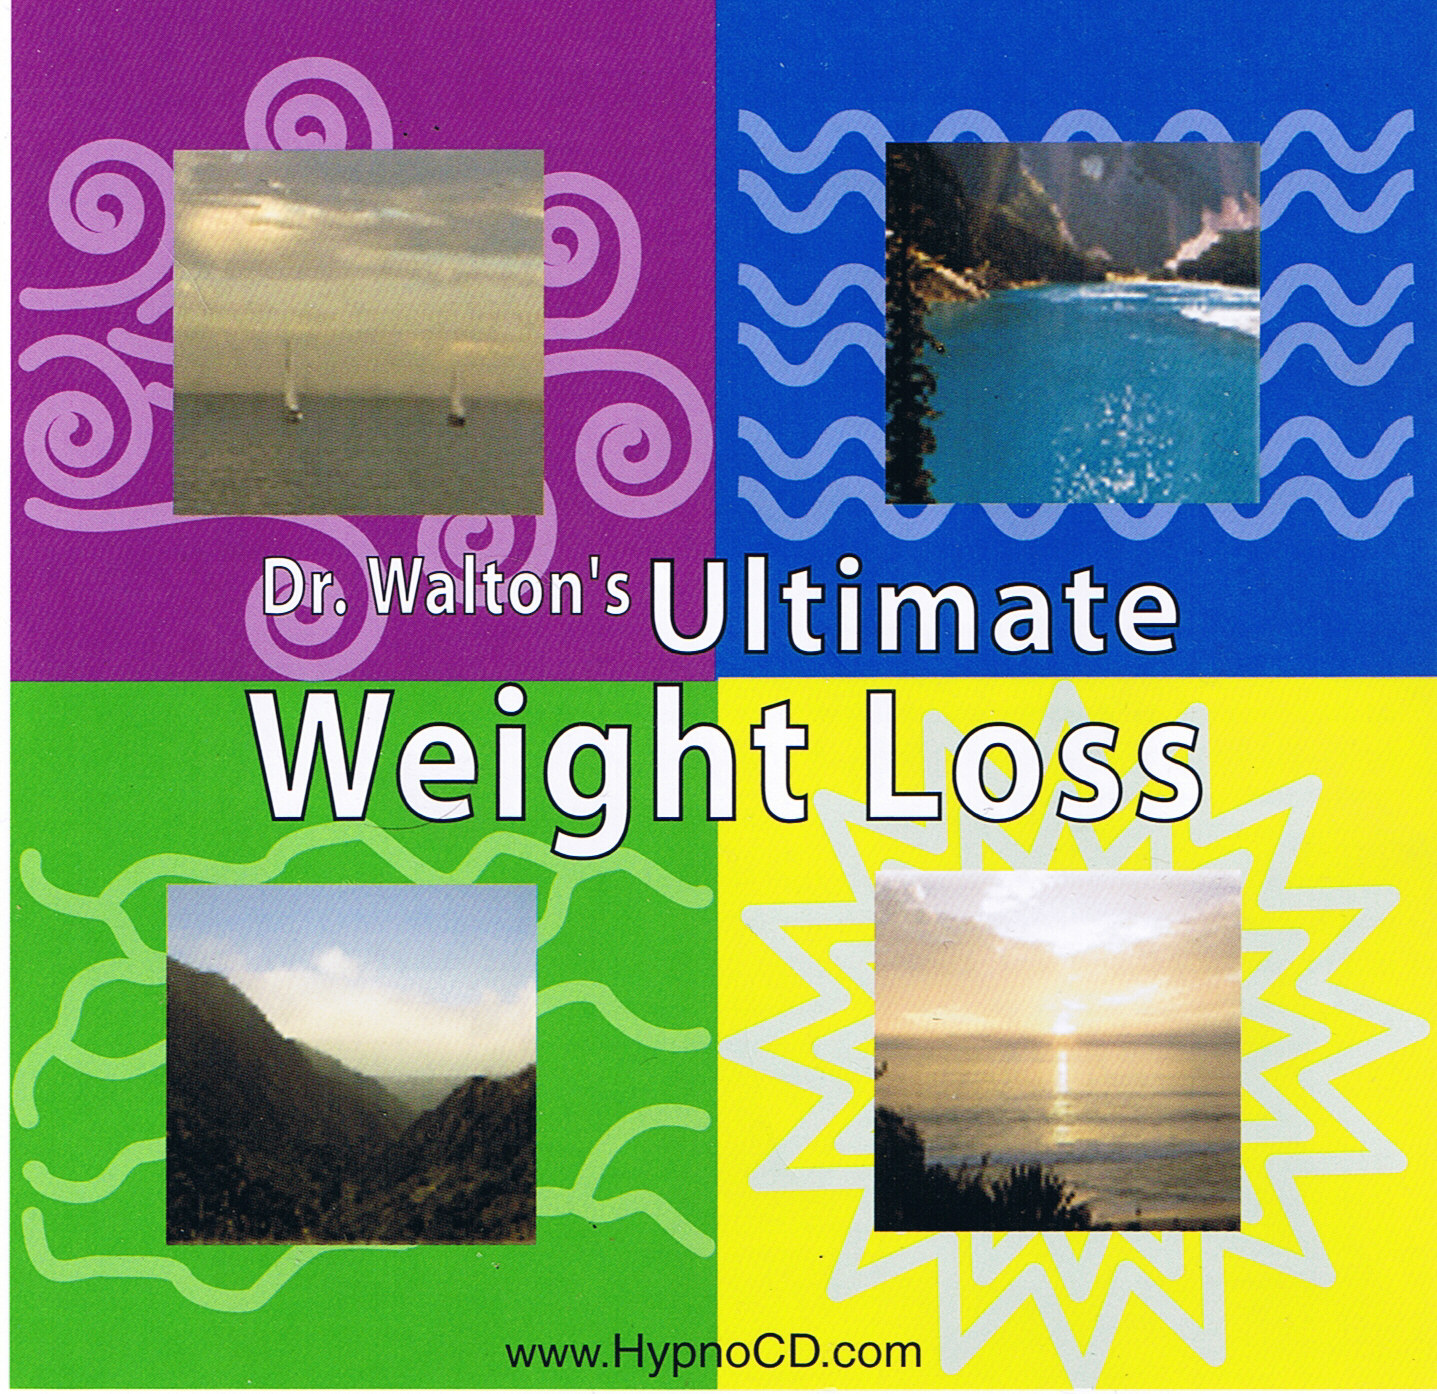 Dr. Walton's Ultimate Weight Loss [DD]